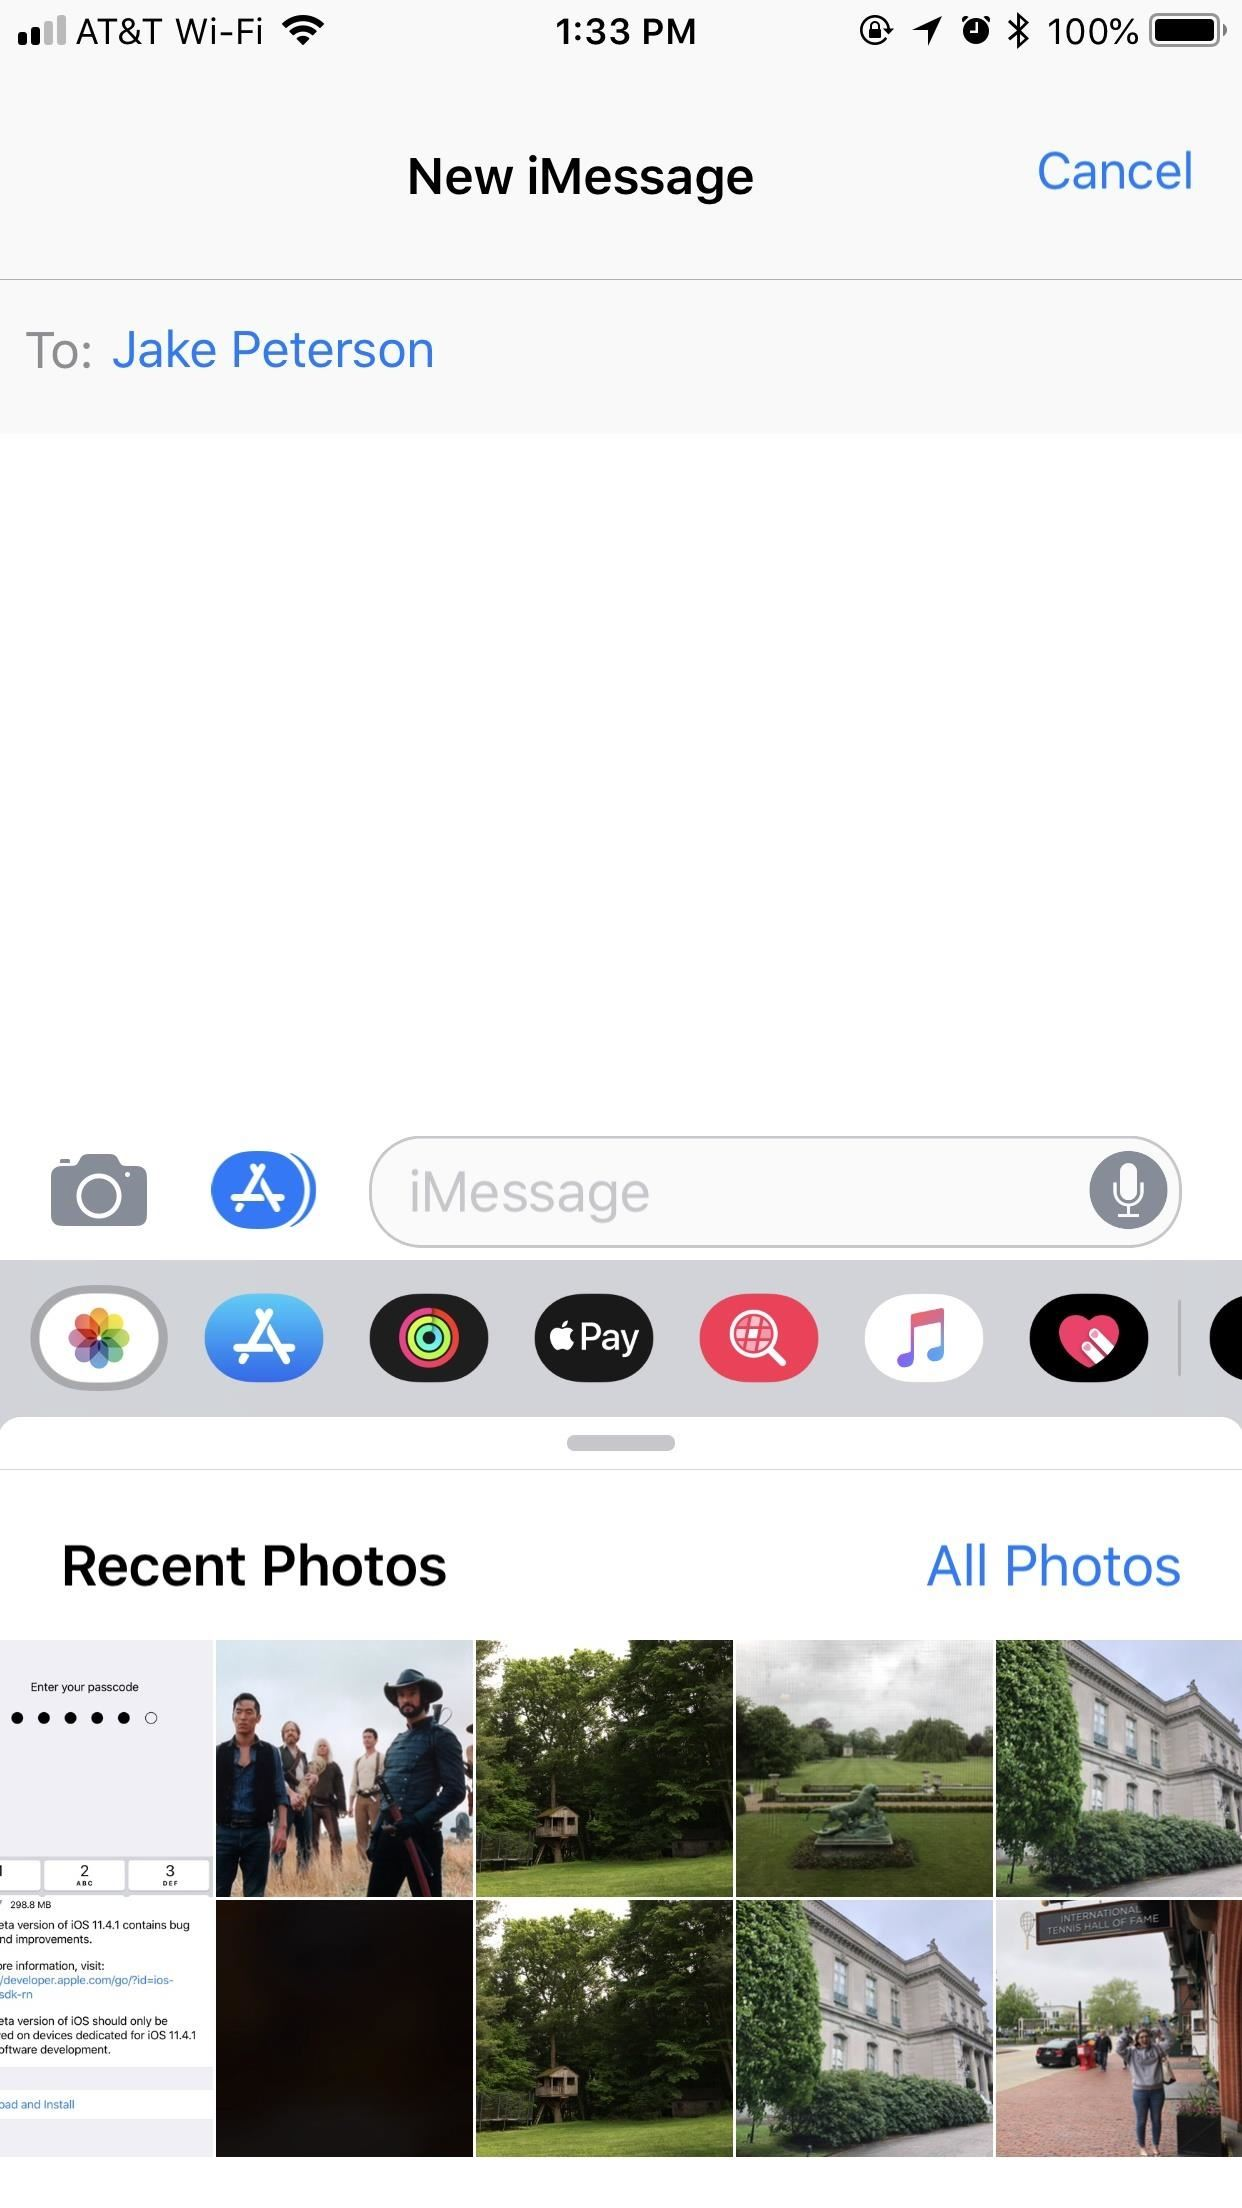 The One Thing That Sucks About iOS 12's New Snapchat-Like Camera Effects for iPhone